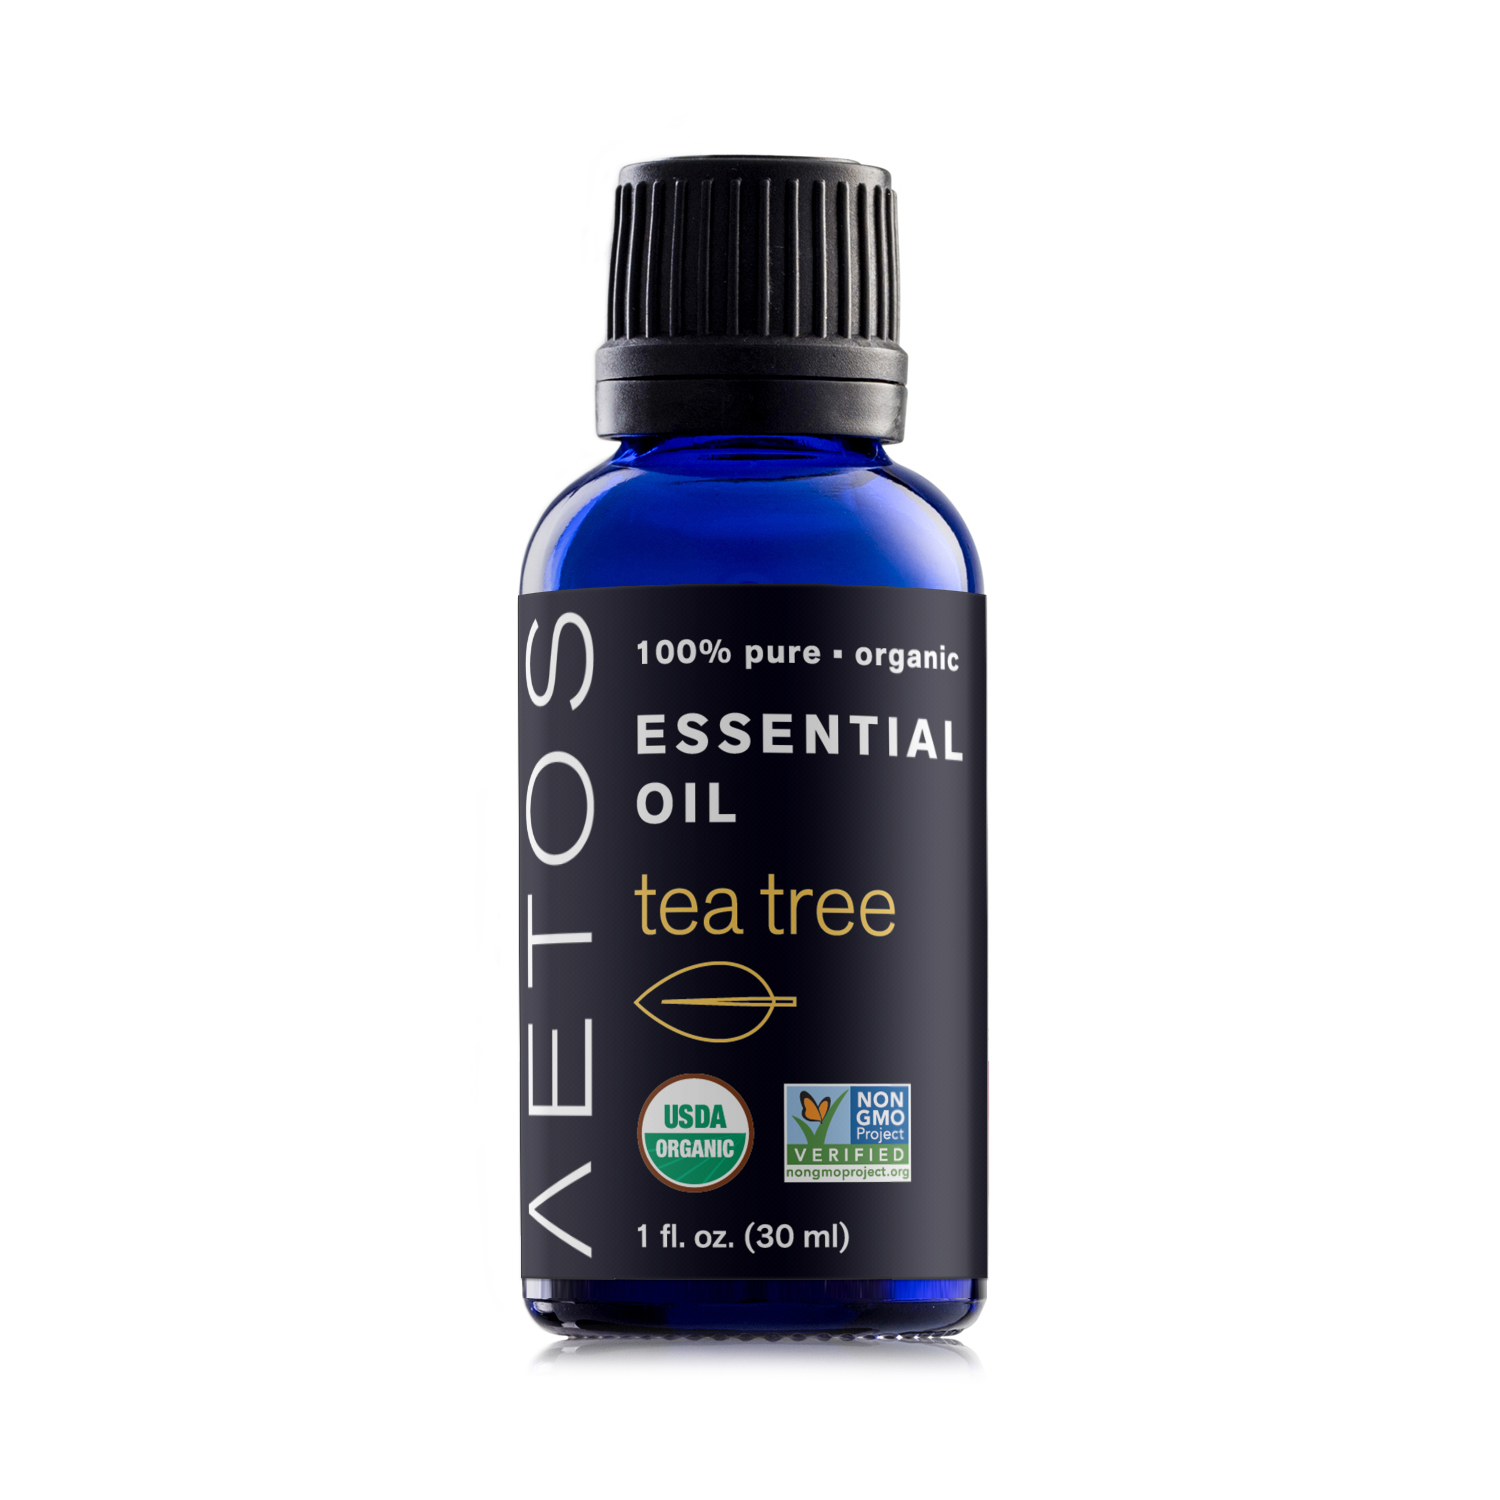 Botanical name:   Melaleuca alternifolia     Country of origin:  Australia    Extraction method:  Steam distilled.    Uses:  Anti-bacterial. Respiratory aid. Acne relief.